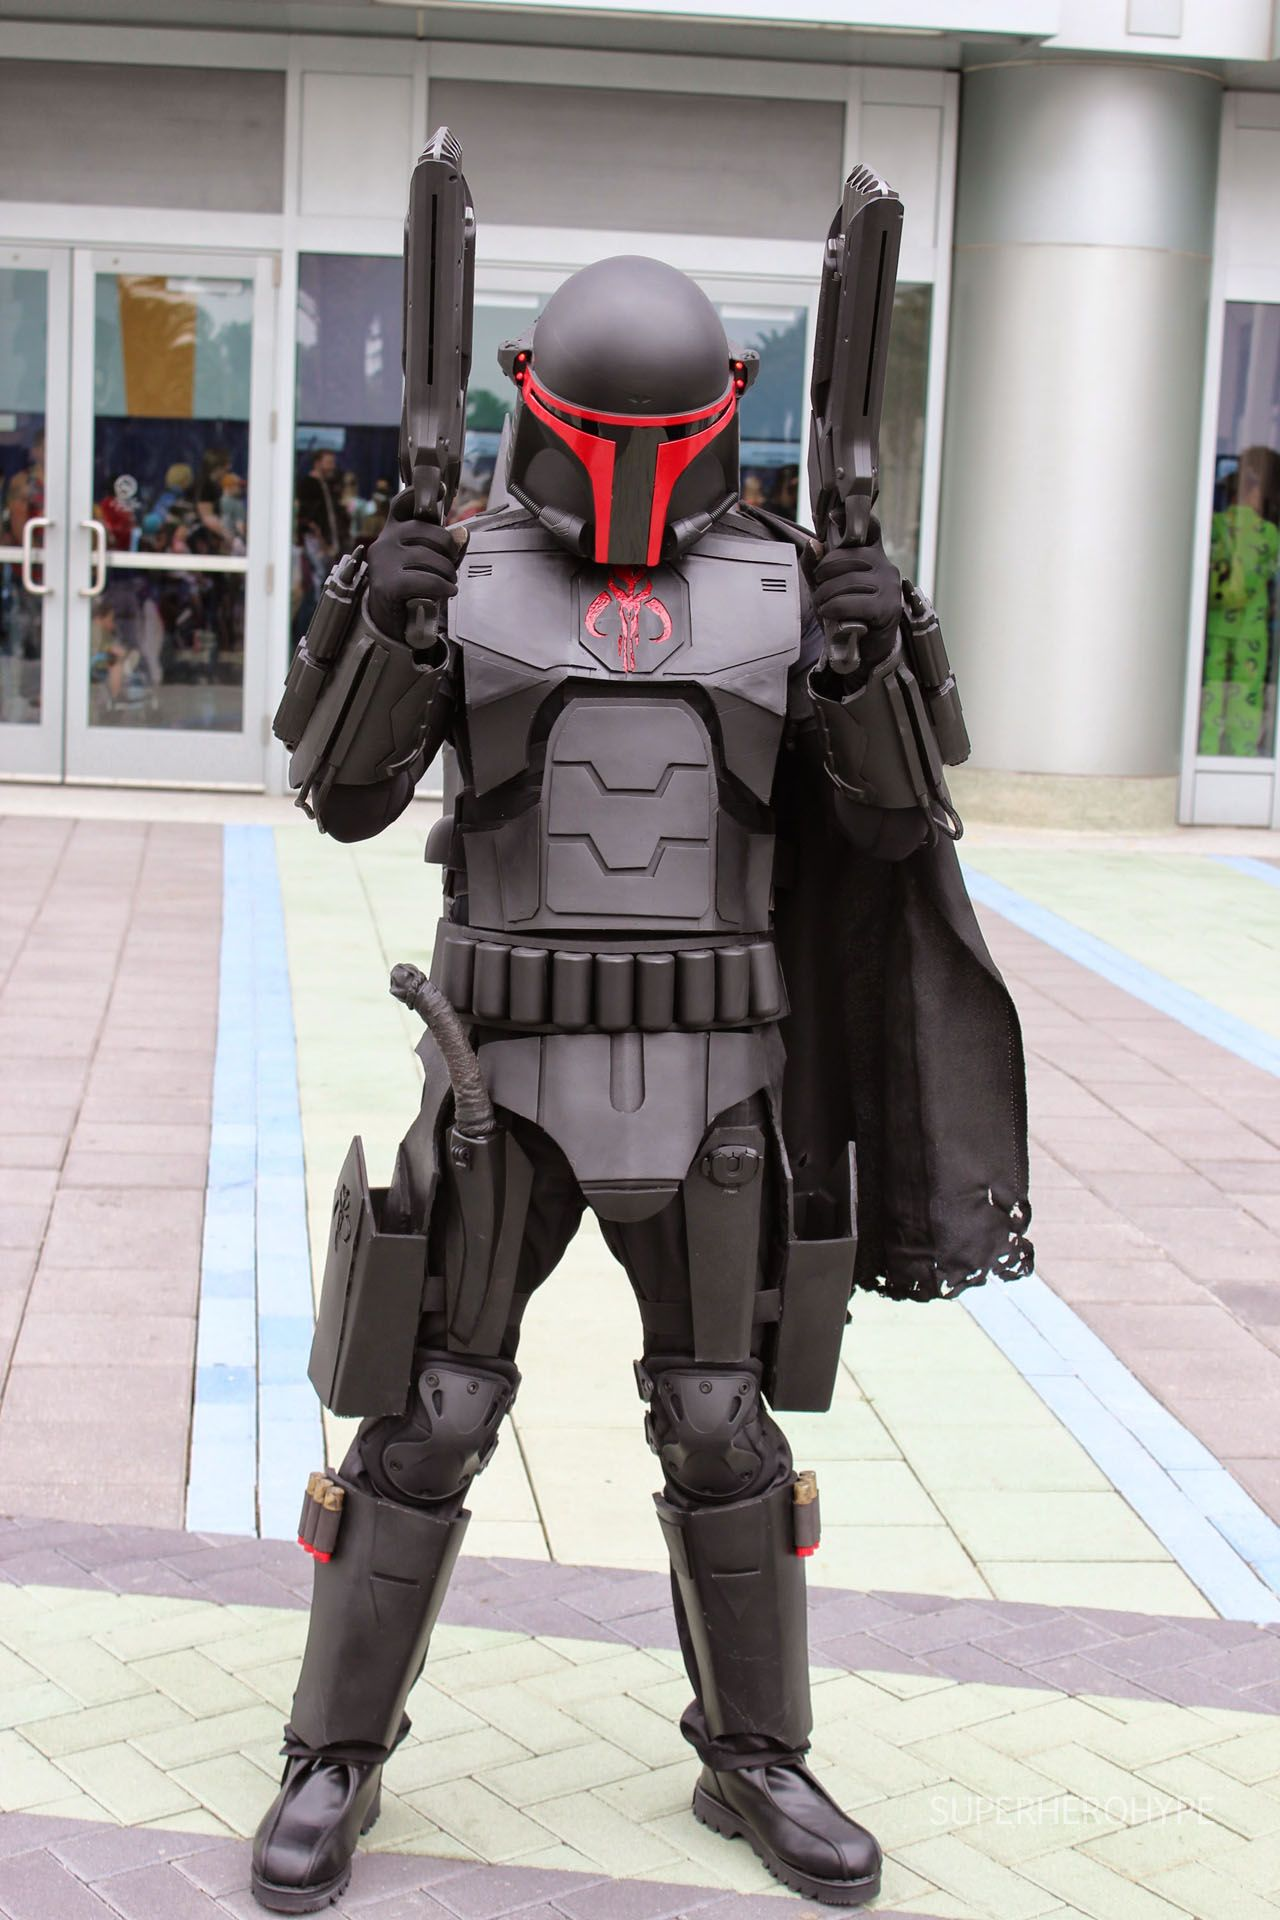 Mandalorian, this armor is amazing. Love the colors and